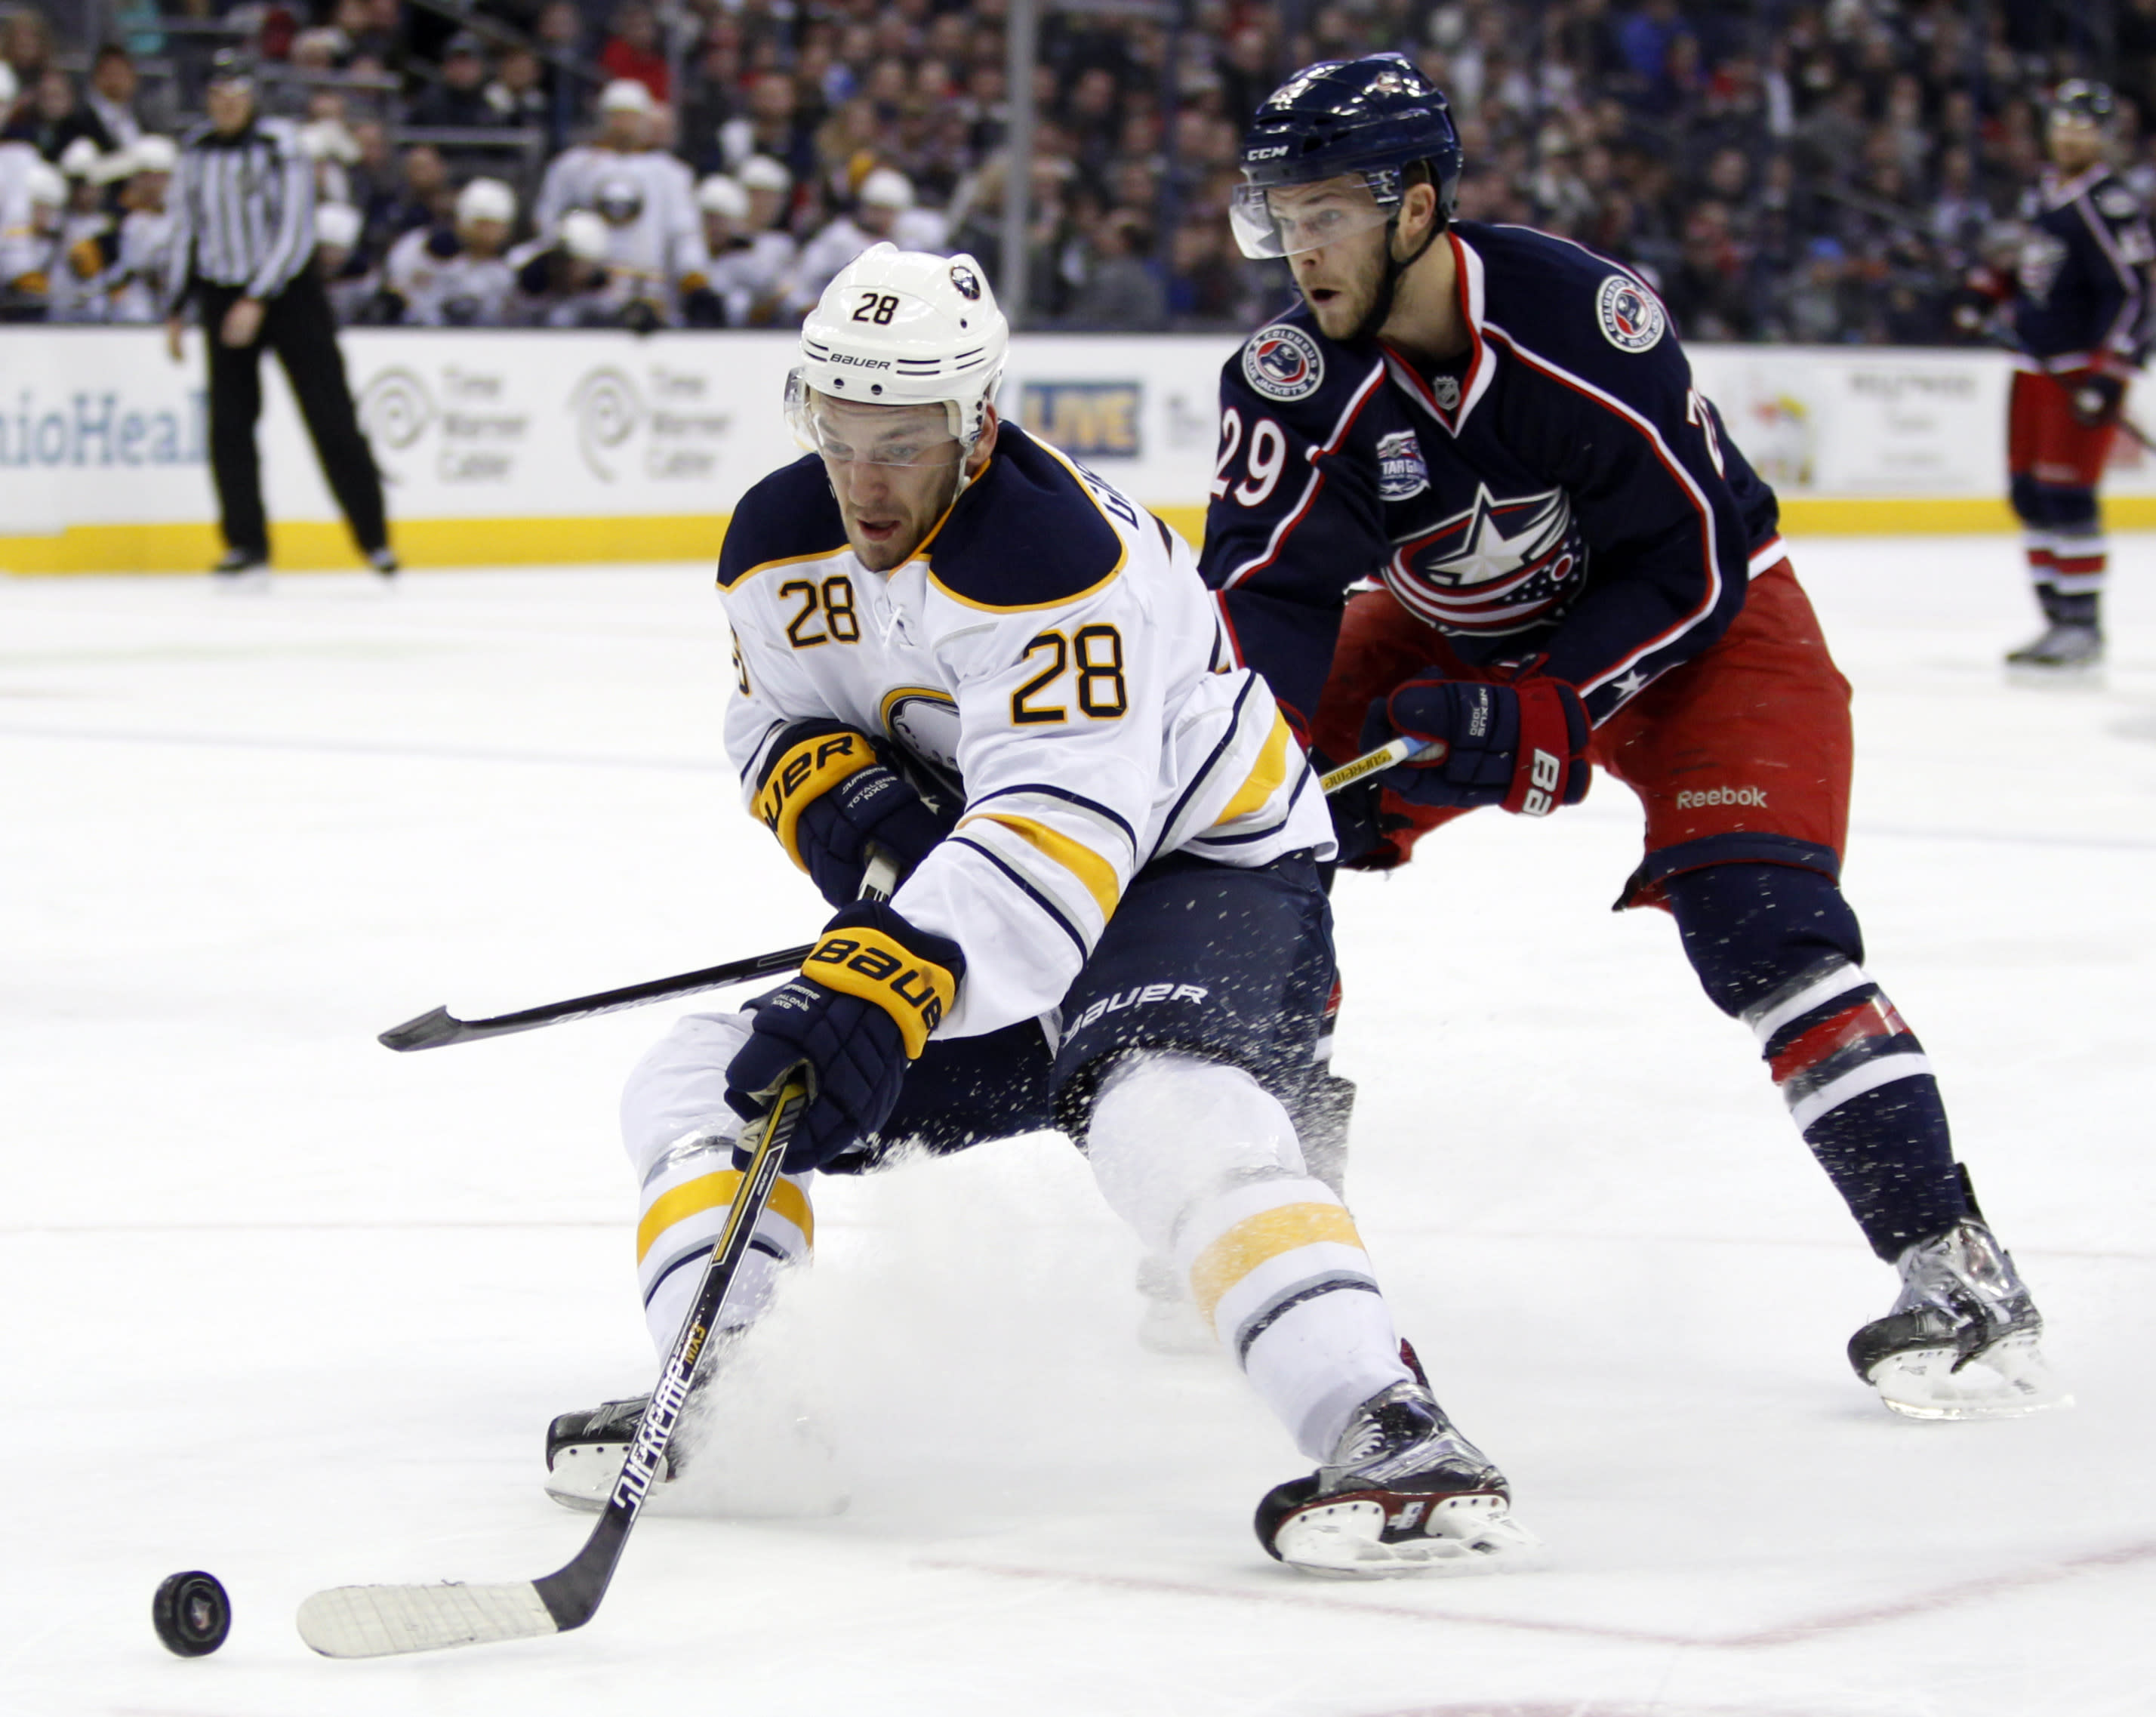 Girgensons powers Sabres' rare burst in 4-2 win over CBJ